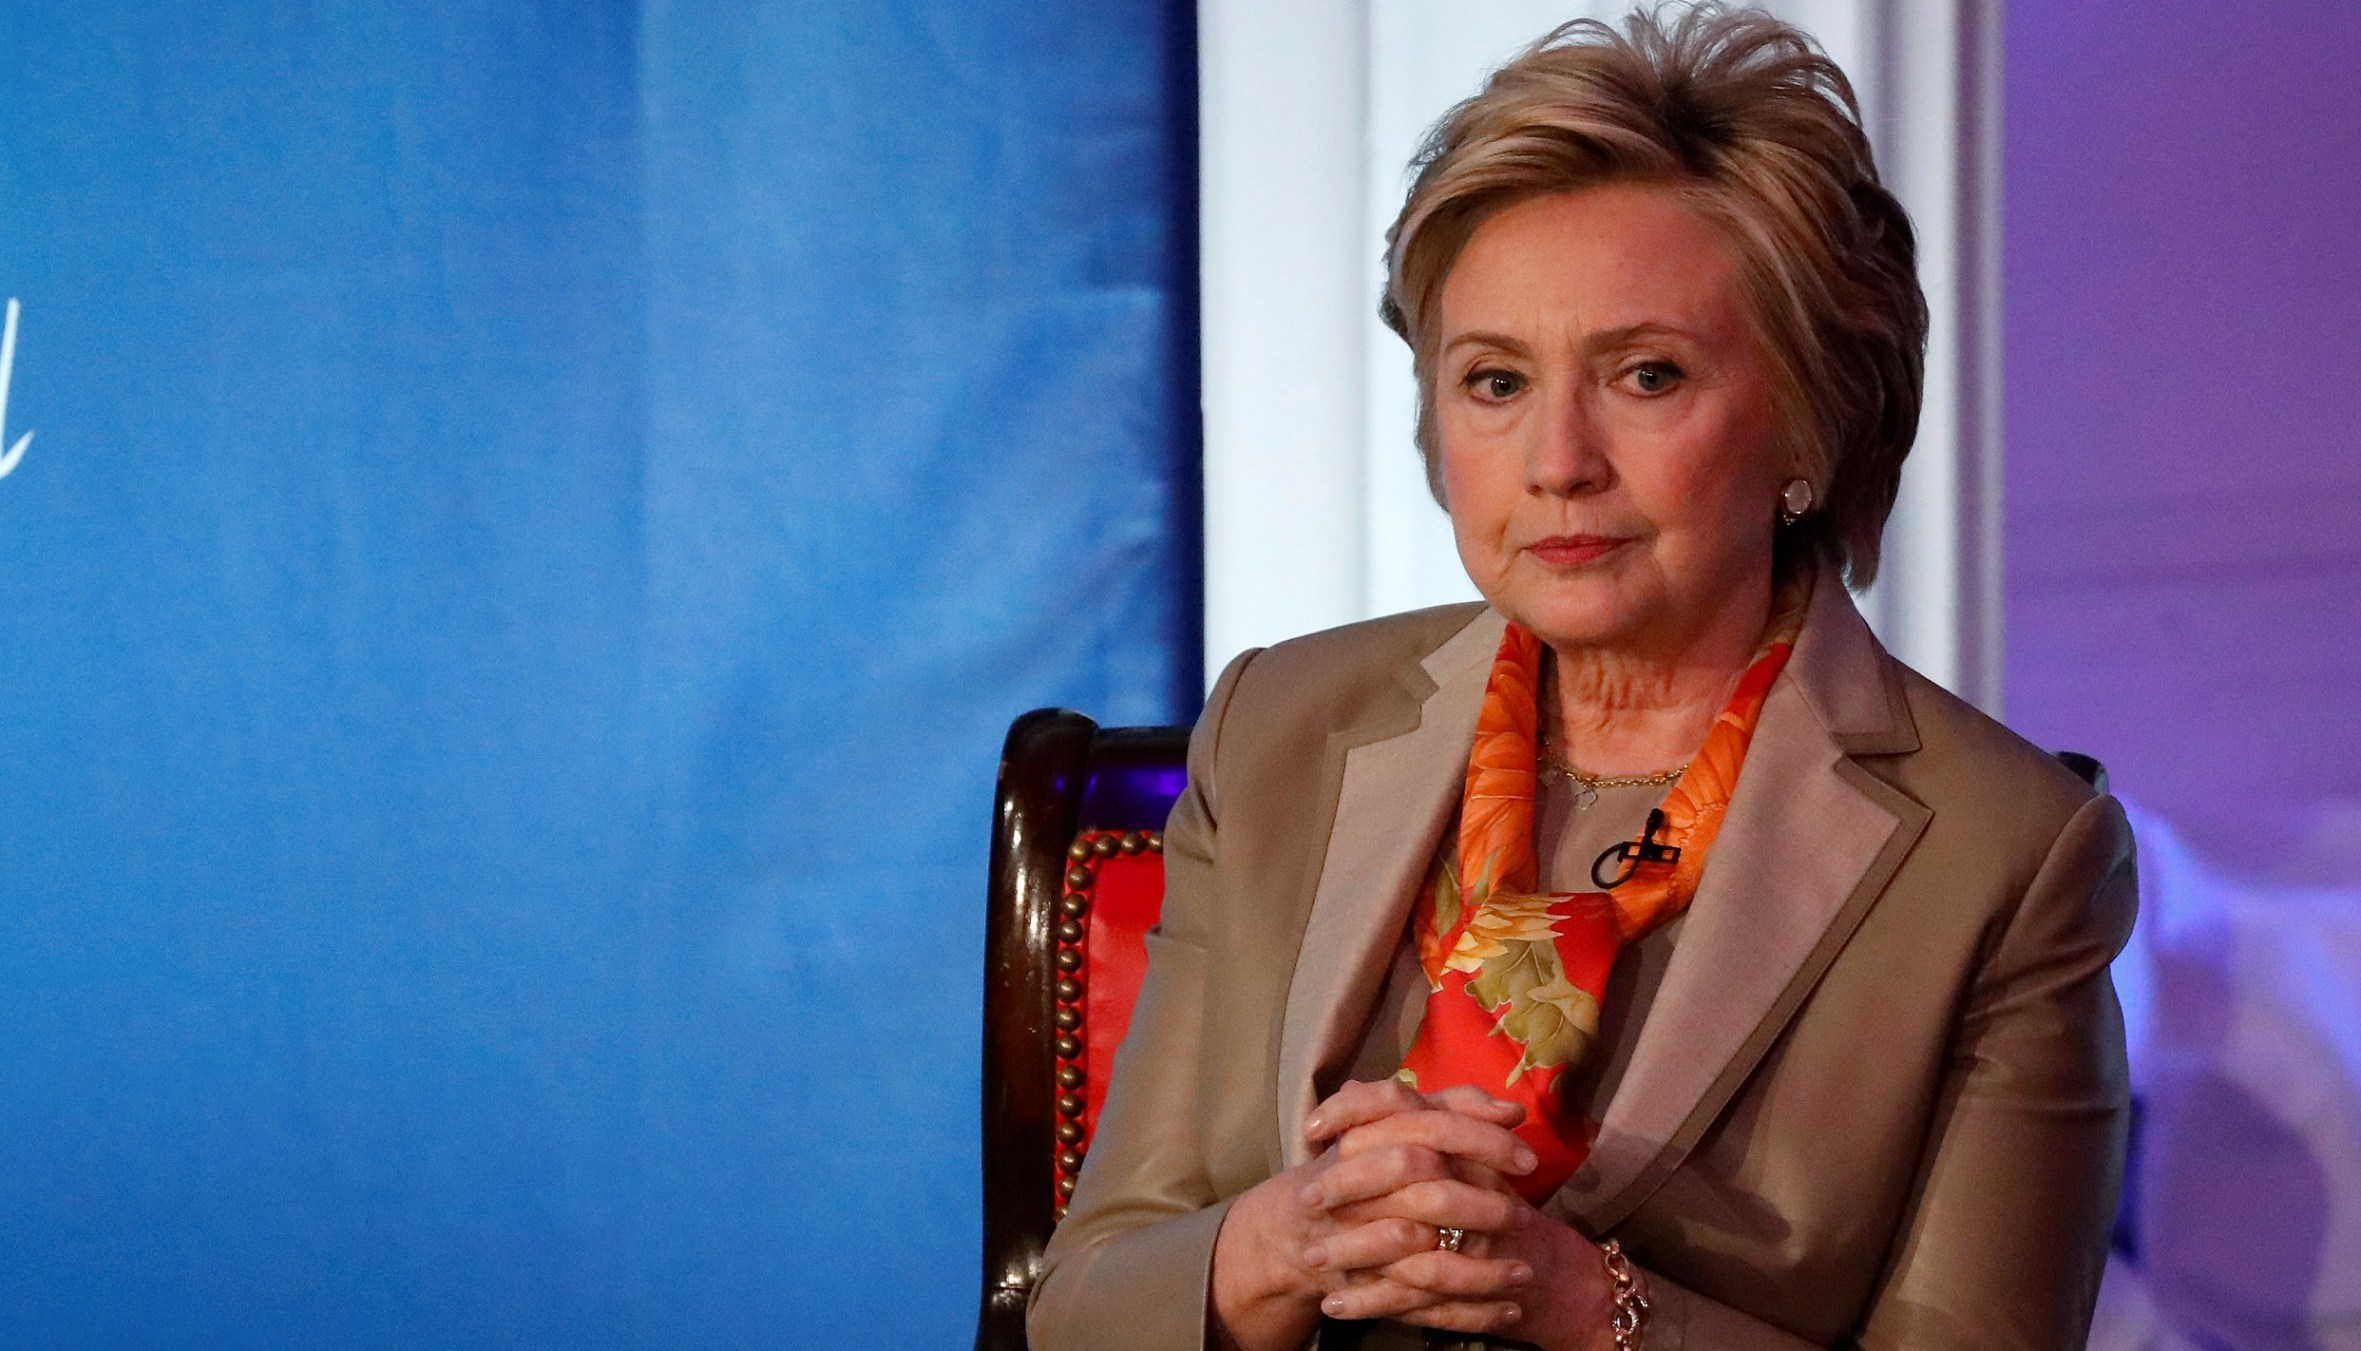 Former U.S. Secretary of State Hillary Clinton takes part in the Women for Women International Luncheon in New York City, New York, U.S., May 2, 2017. REUTERS/Brendan McDermid - RC1FD3A3C6A0